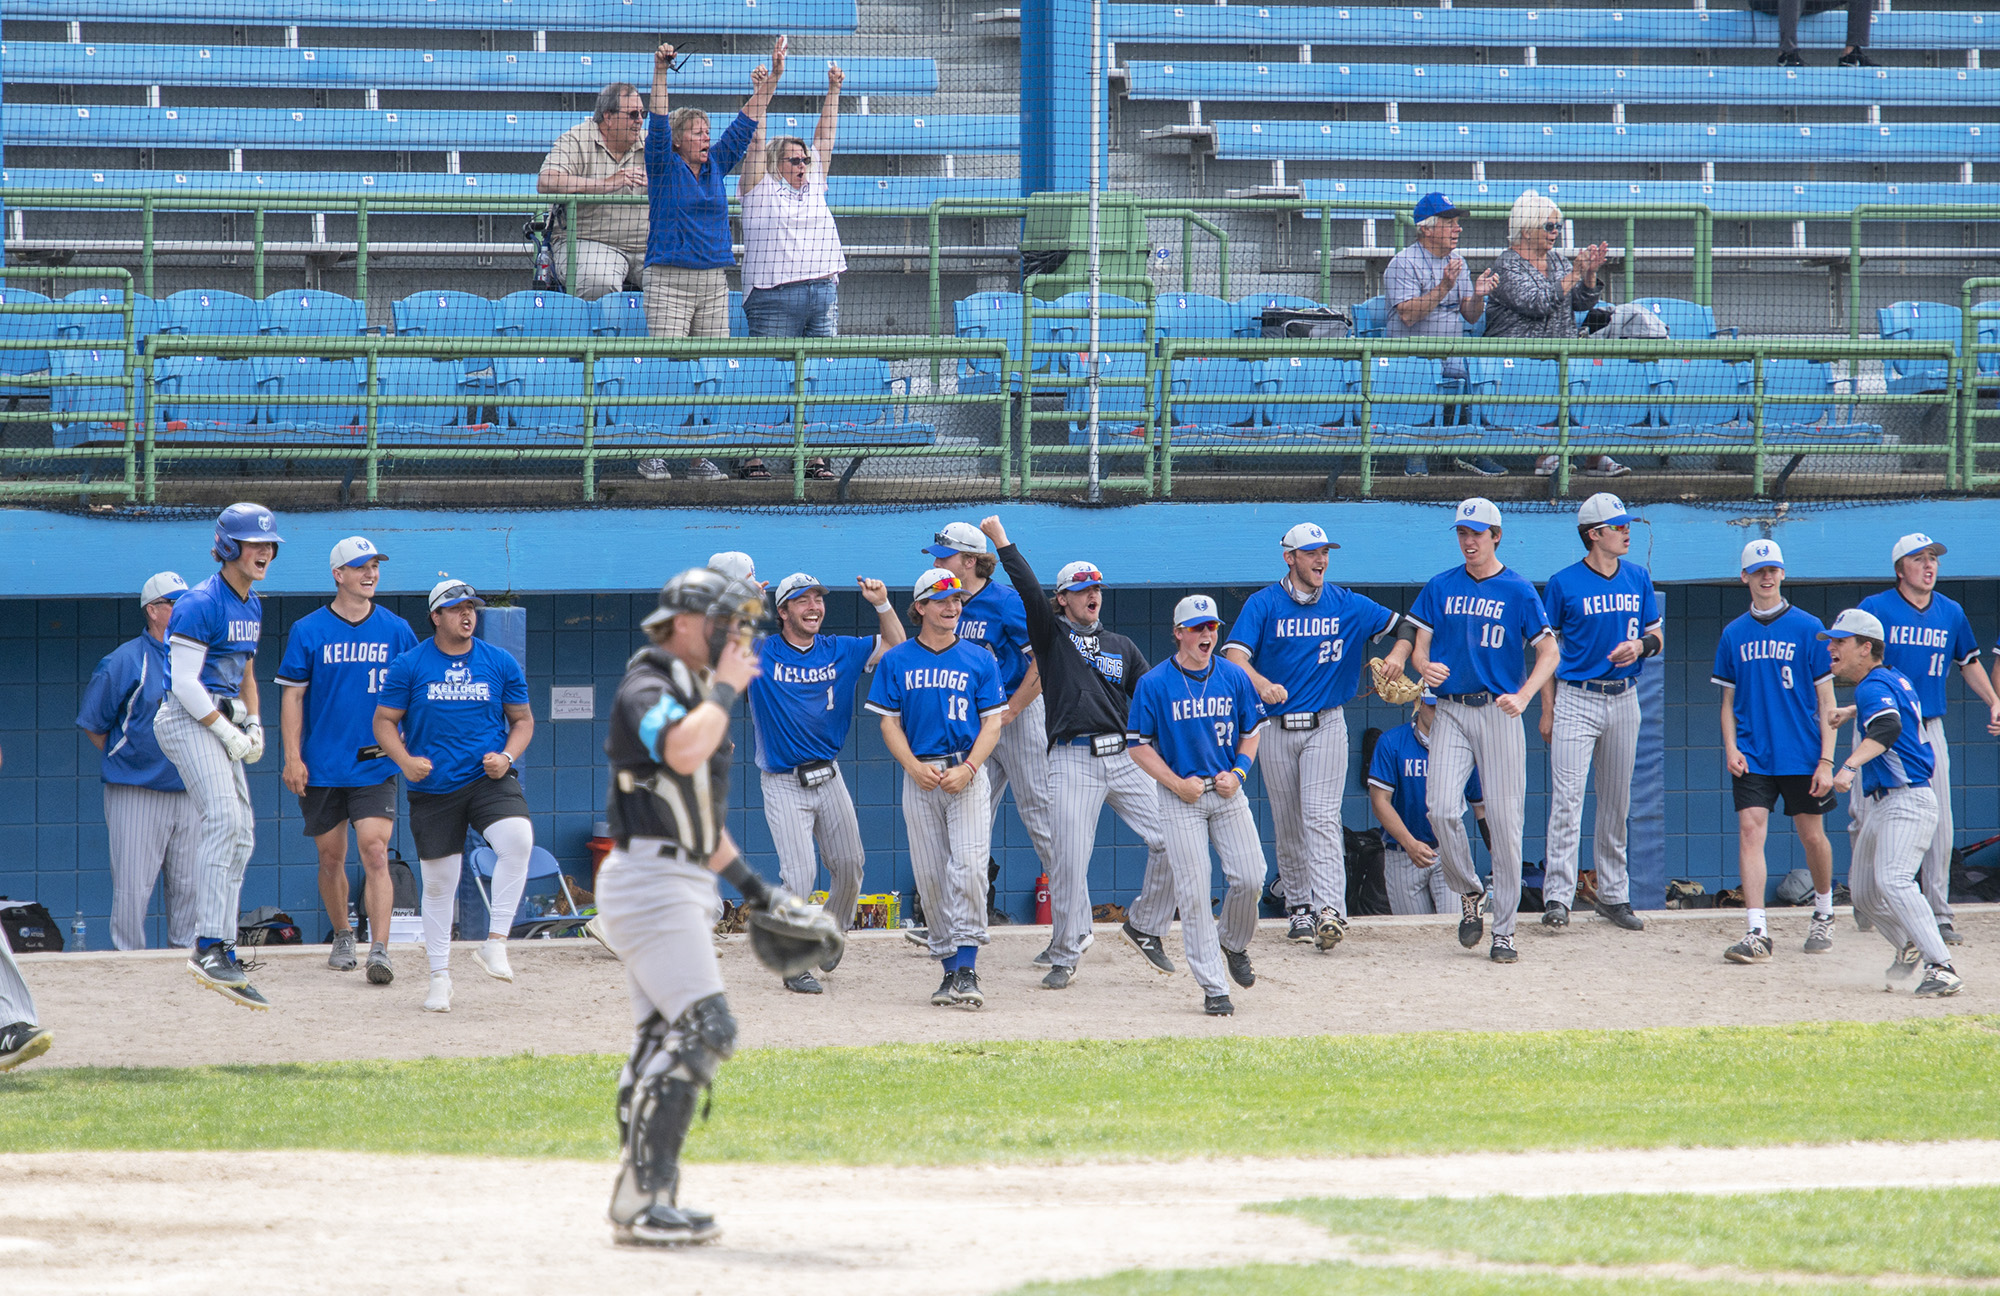 The KCC baseball team cheers from the dugout during a game.